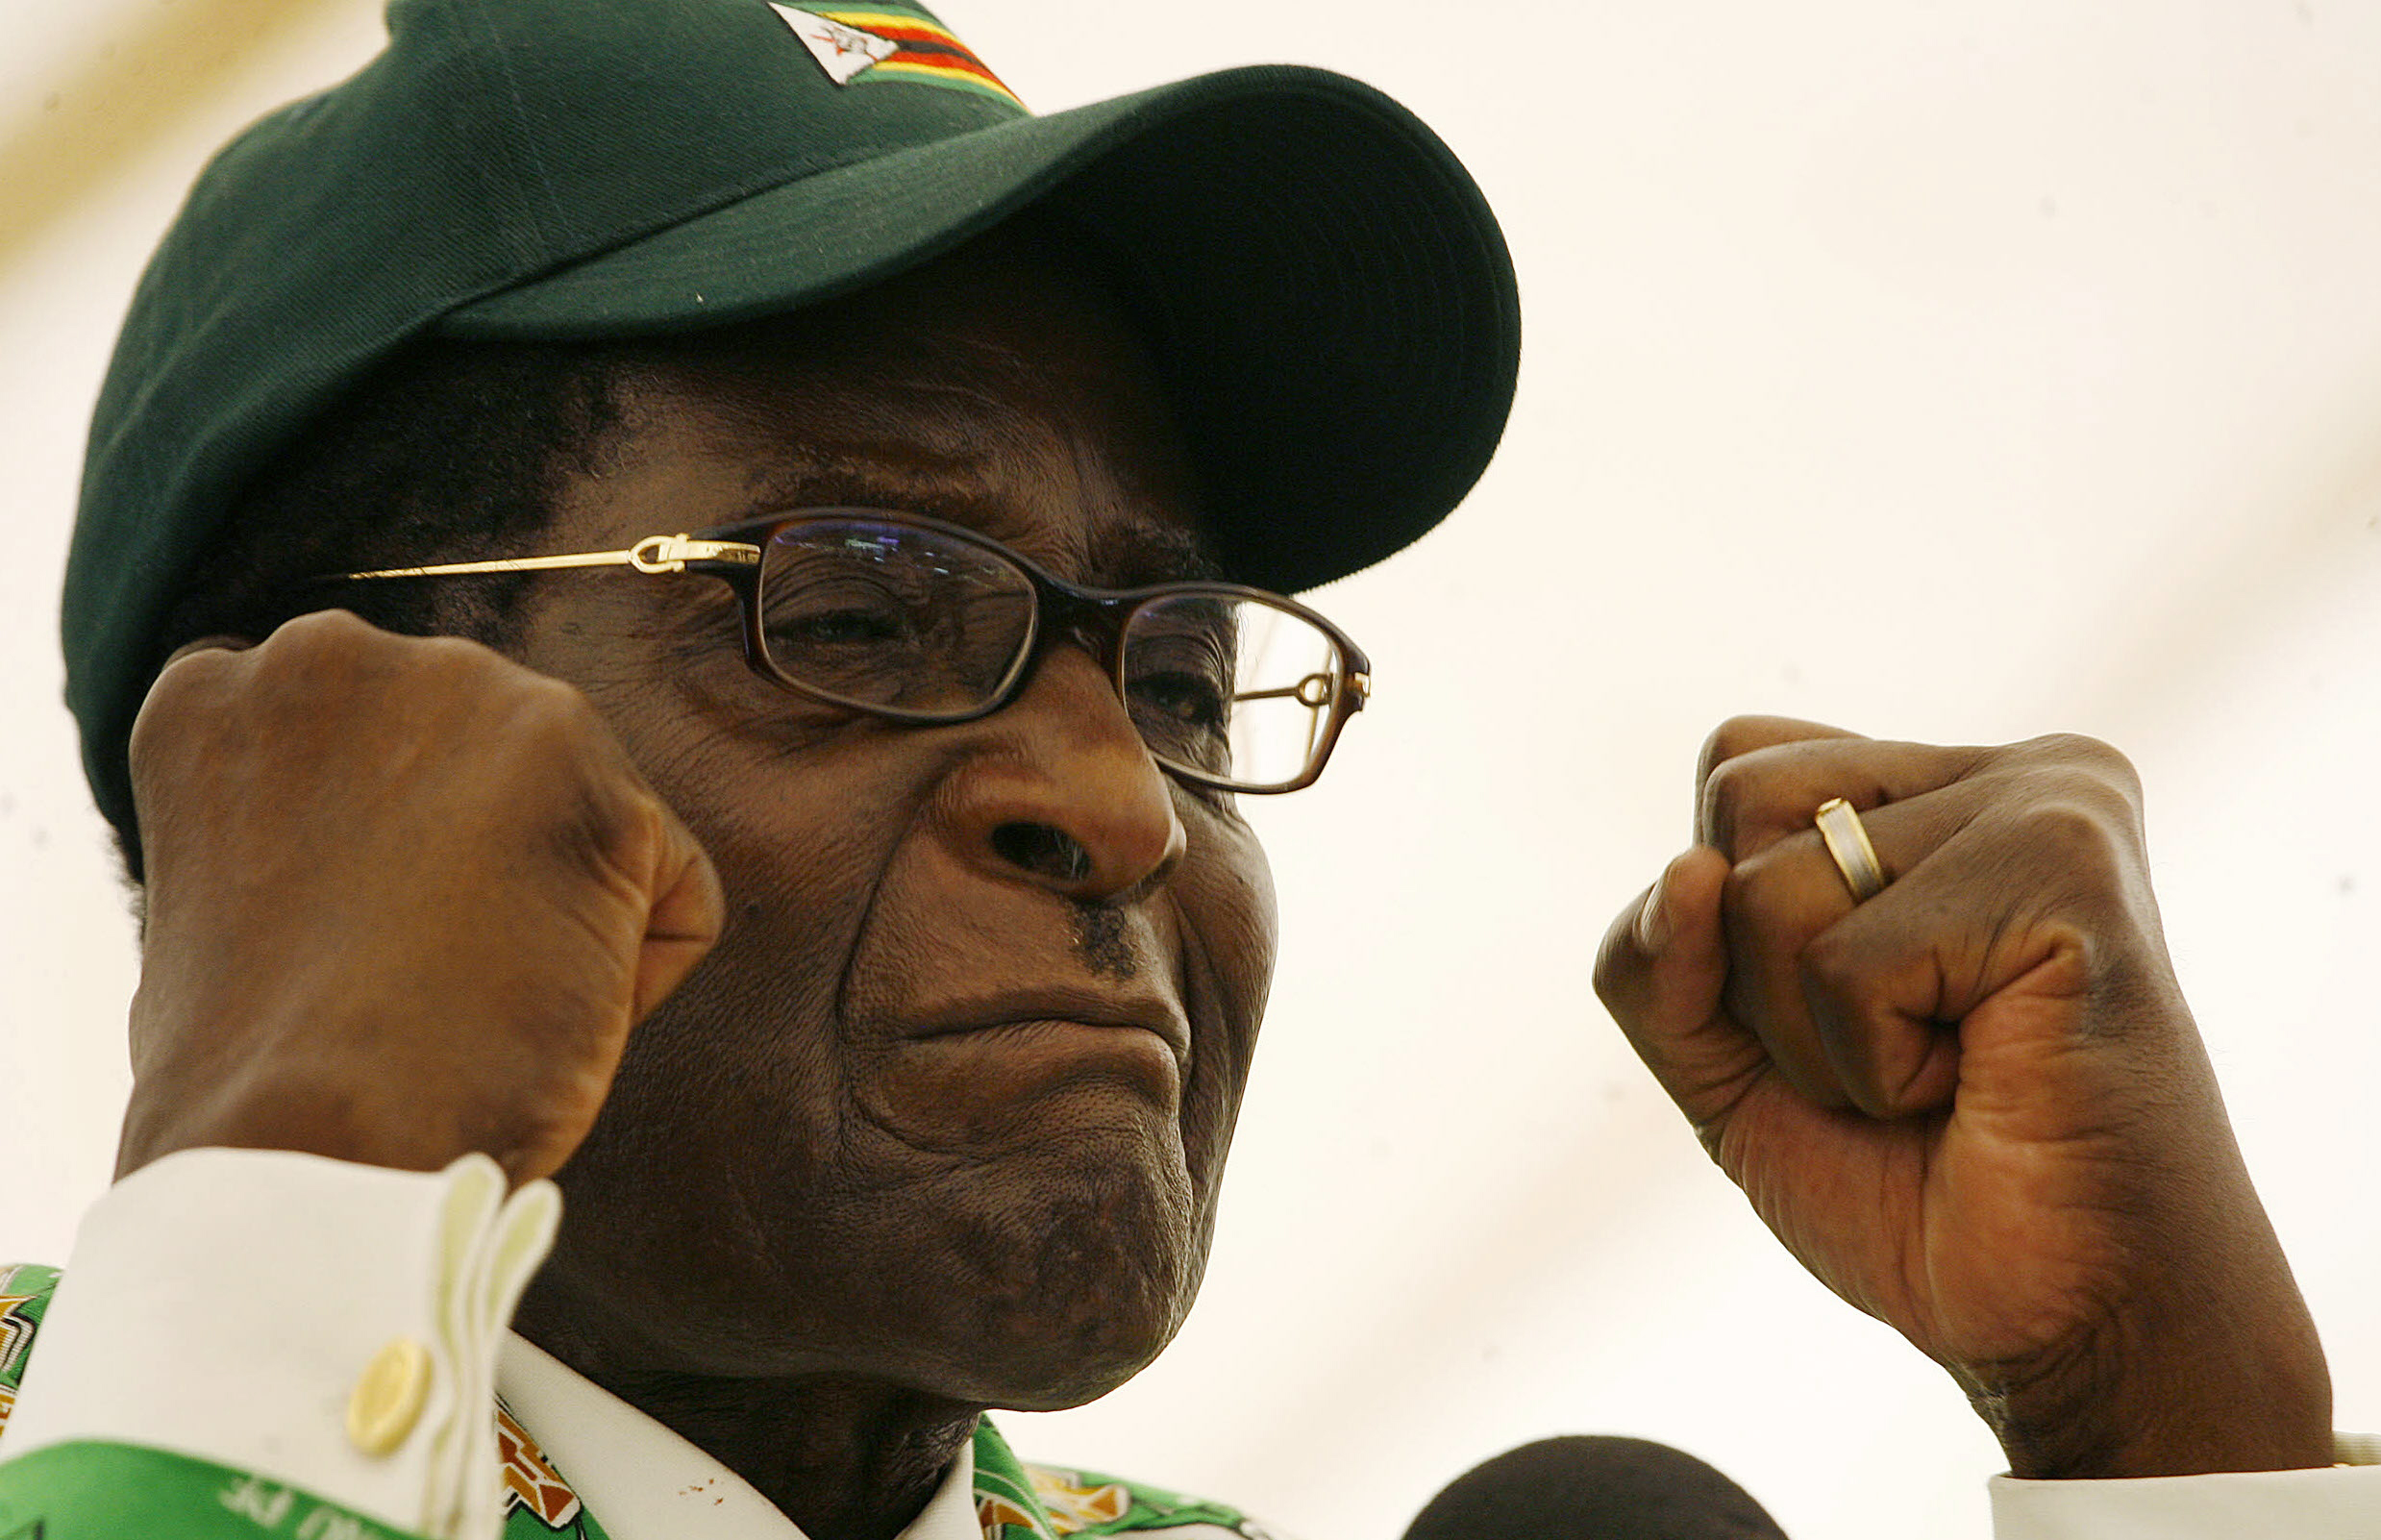 Robert Mugabe, pictured wearing a cap and clenched fists, during 2008 election rally